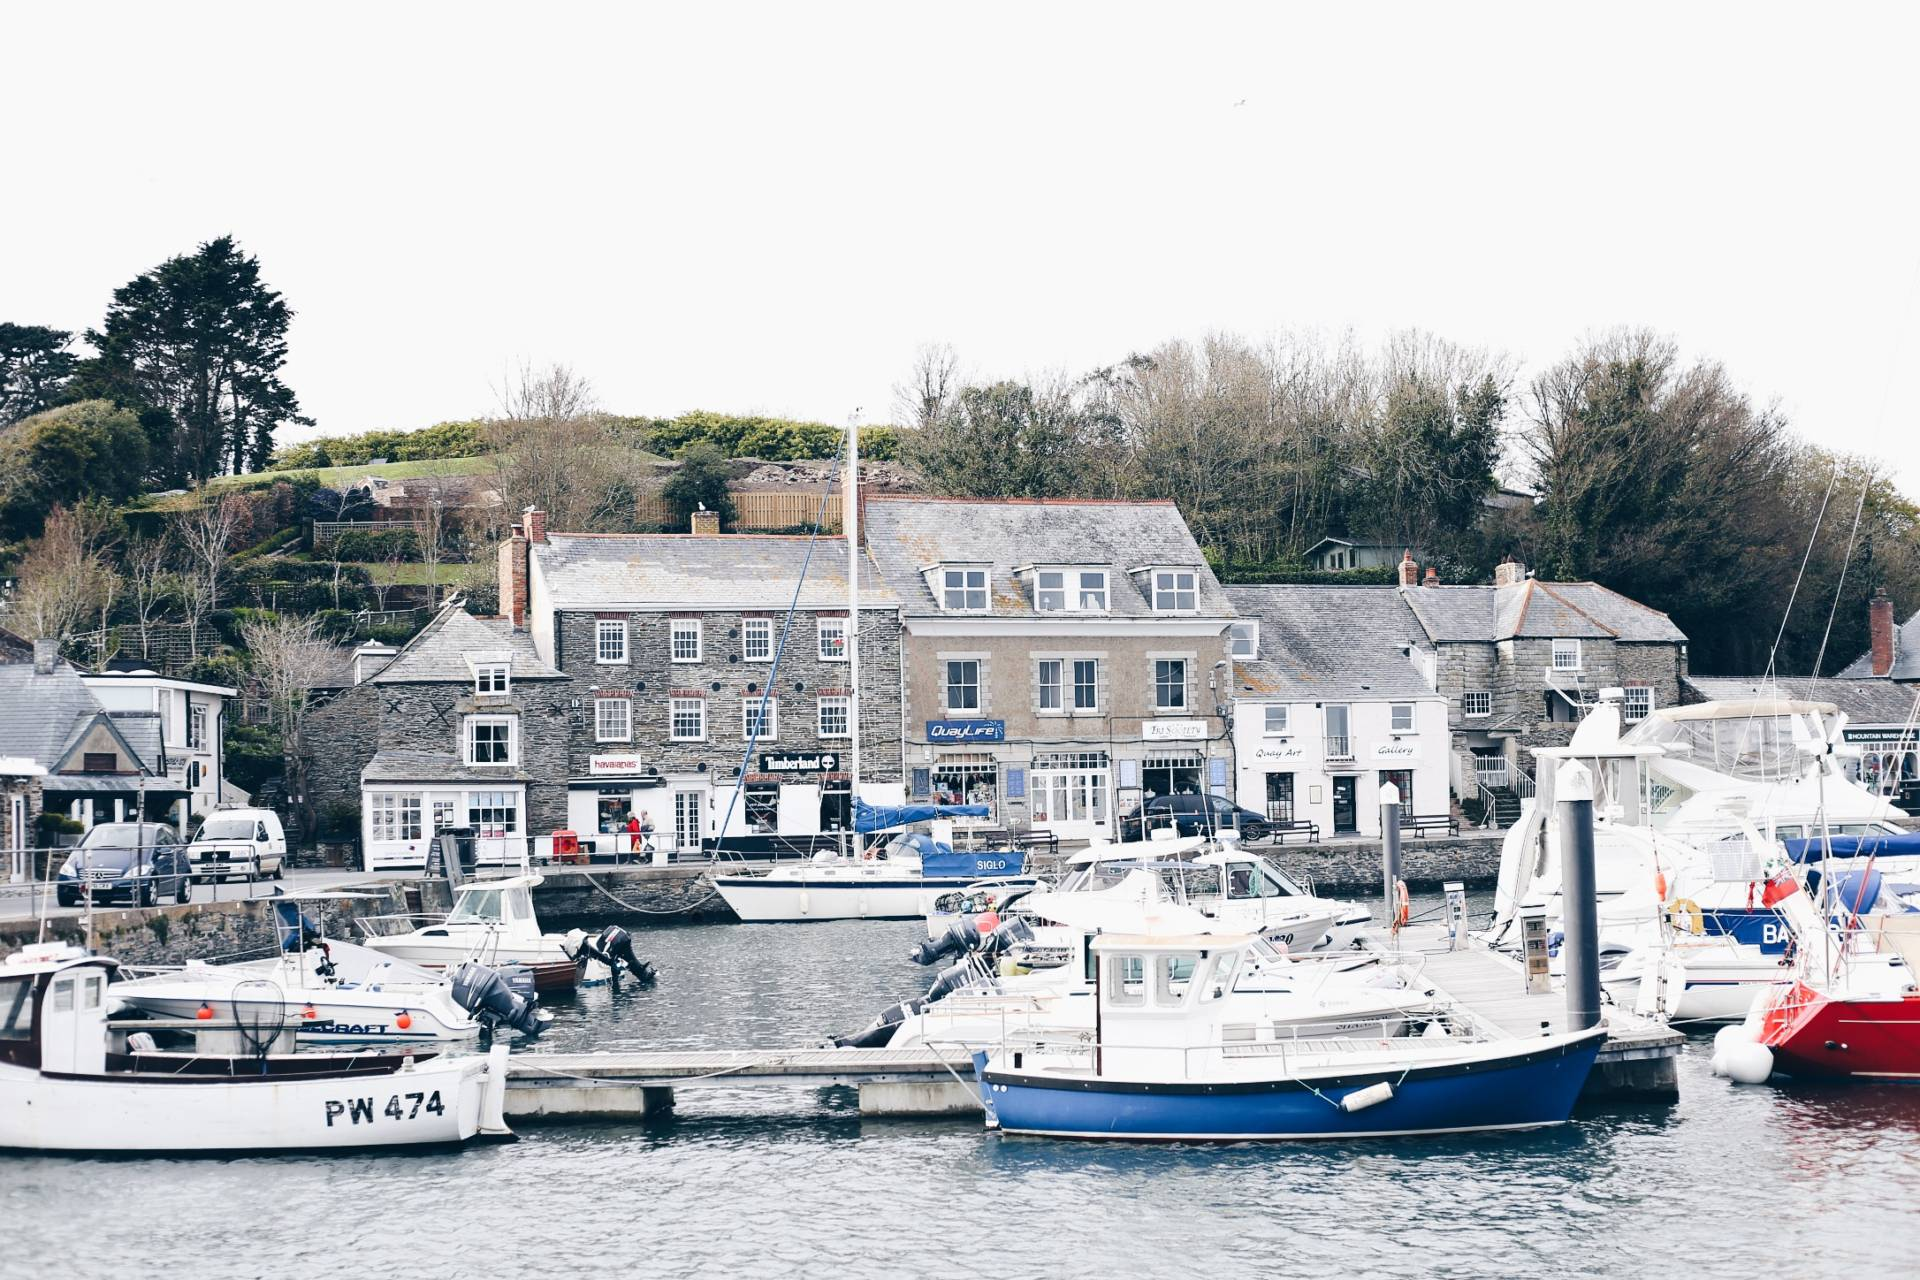 Padstow town near Watergate Bay, Cornwall